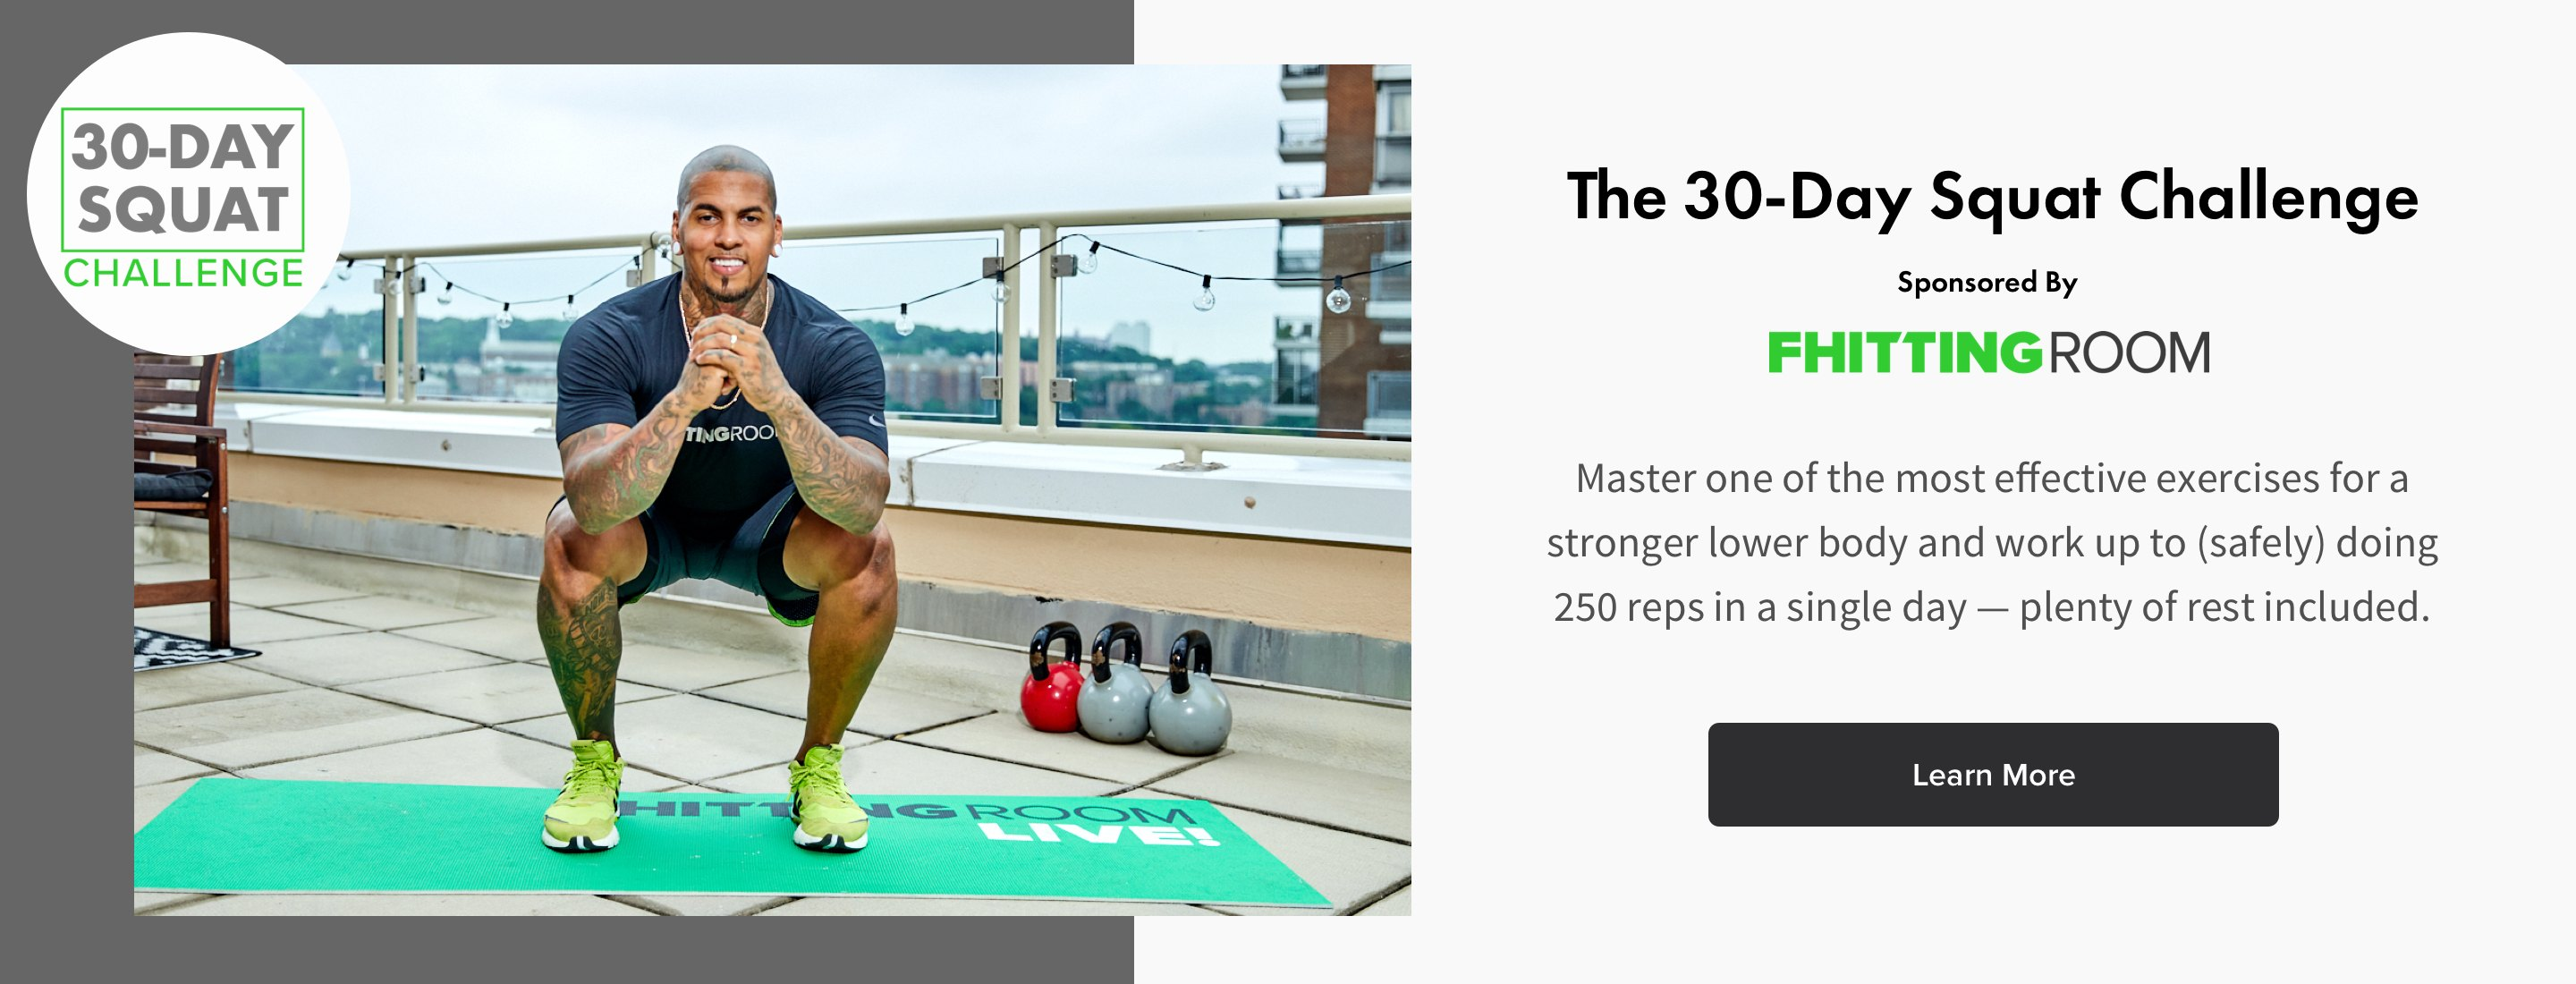 man doing a squat for the 30-day squat challenge